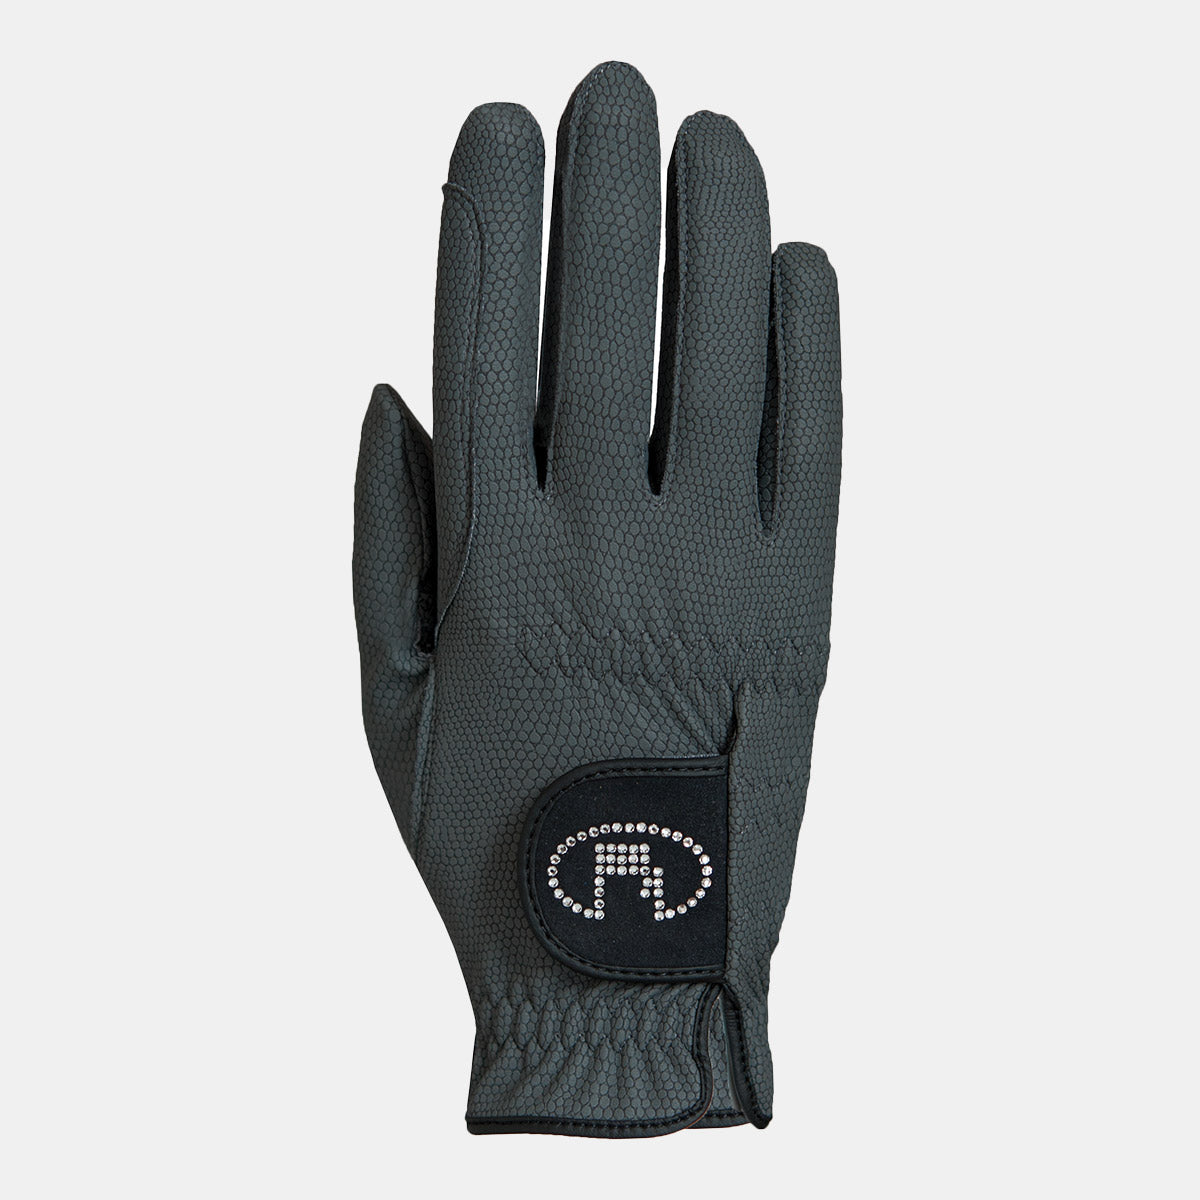 Roeckl Lisboa Summer Riding Gloves in Anthracite